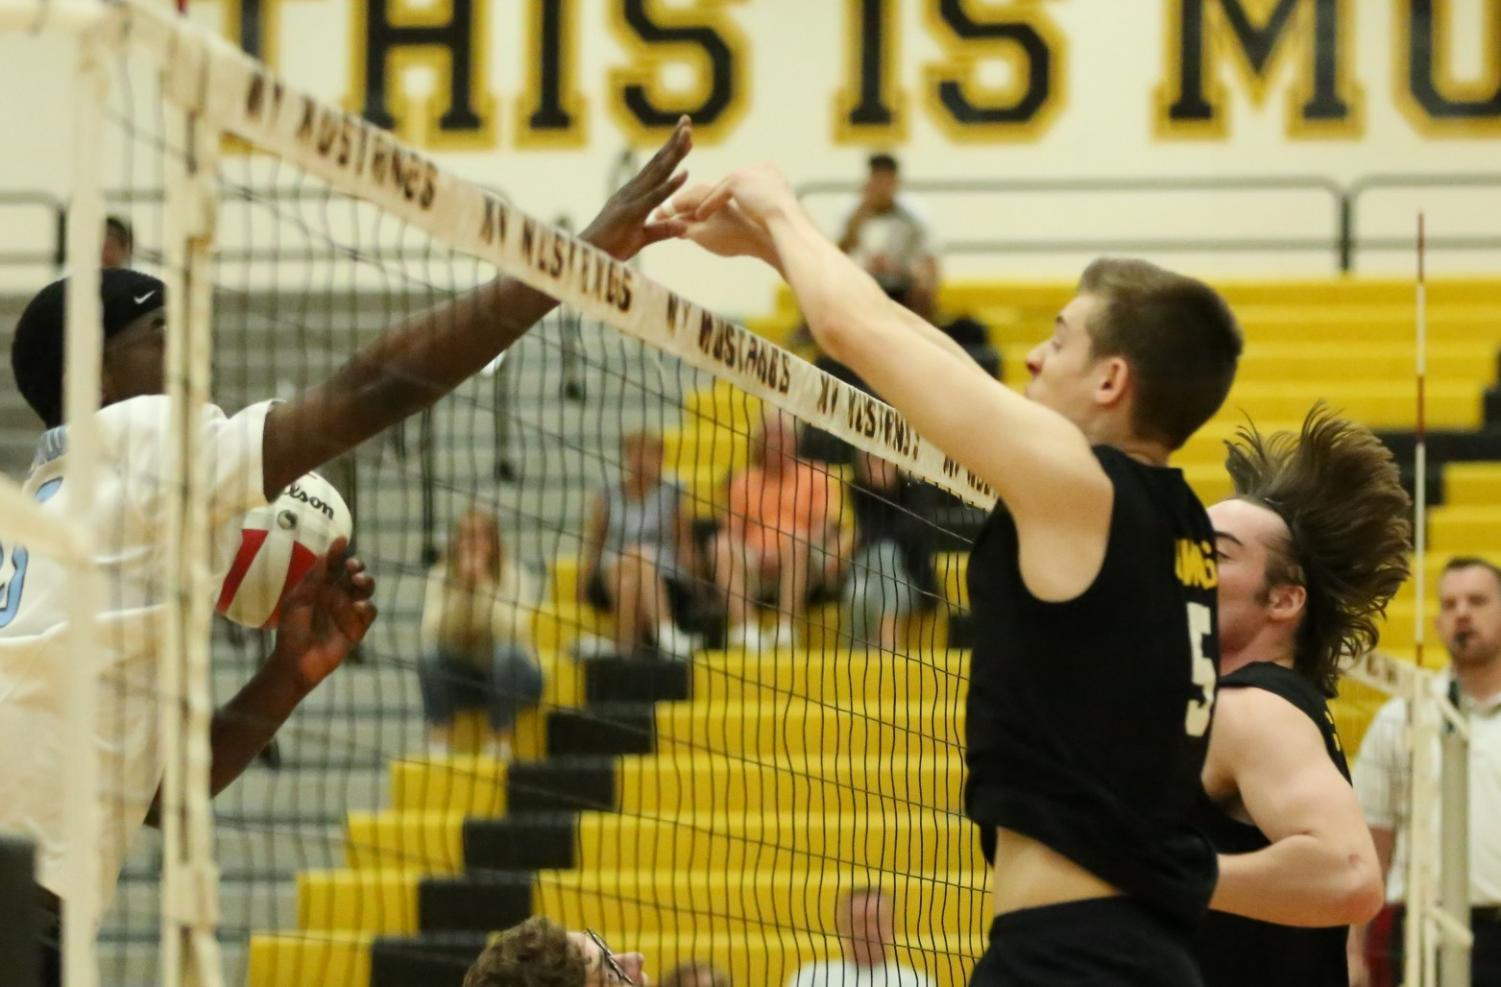 On April 22nd, the boys played against Willowbrook High School. In the second set, outside hitter Ryan Owens blocks the ball.